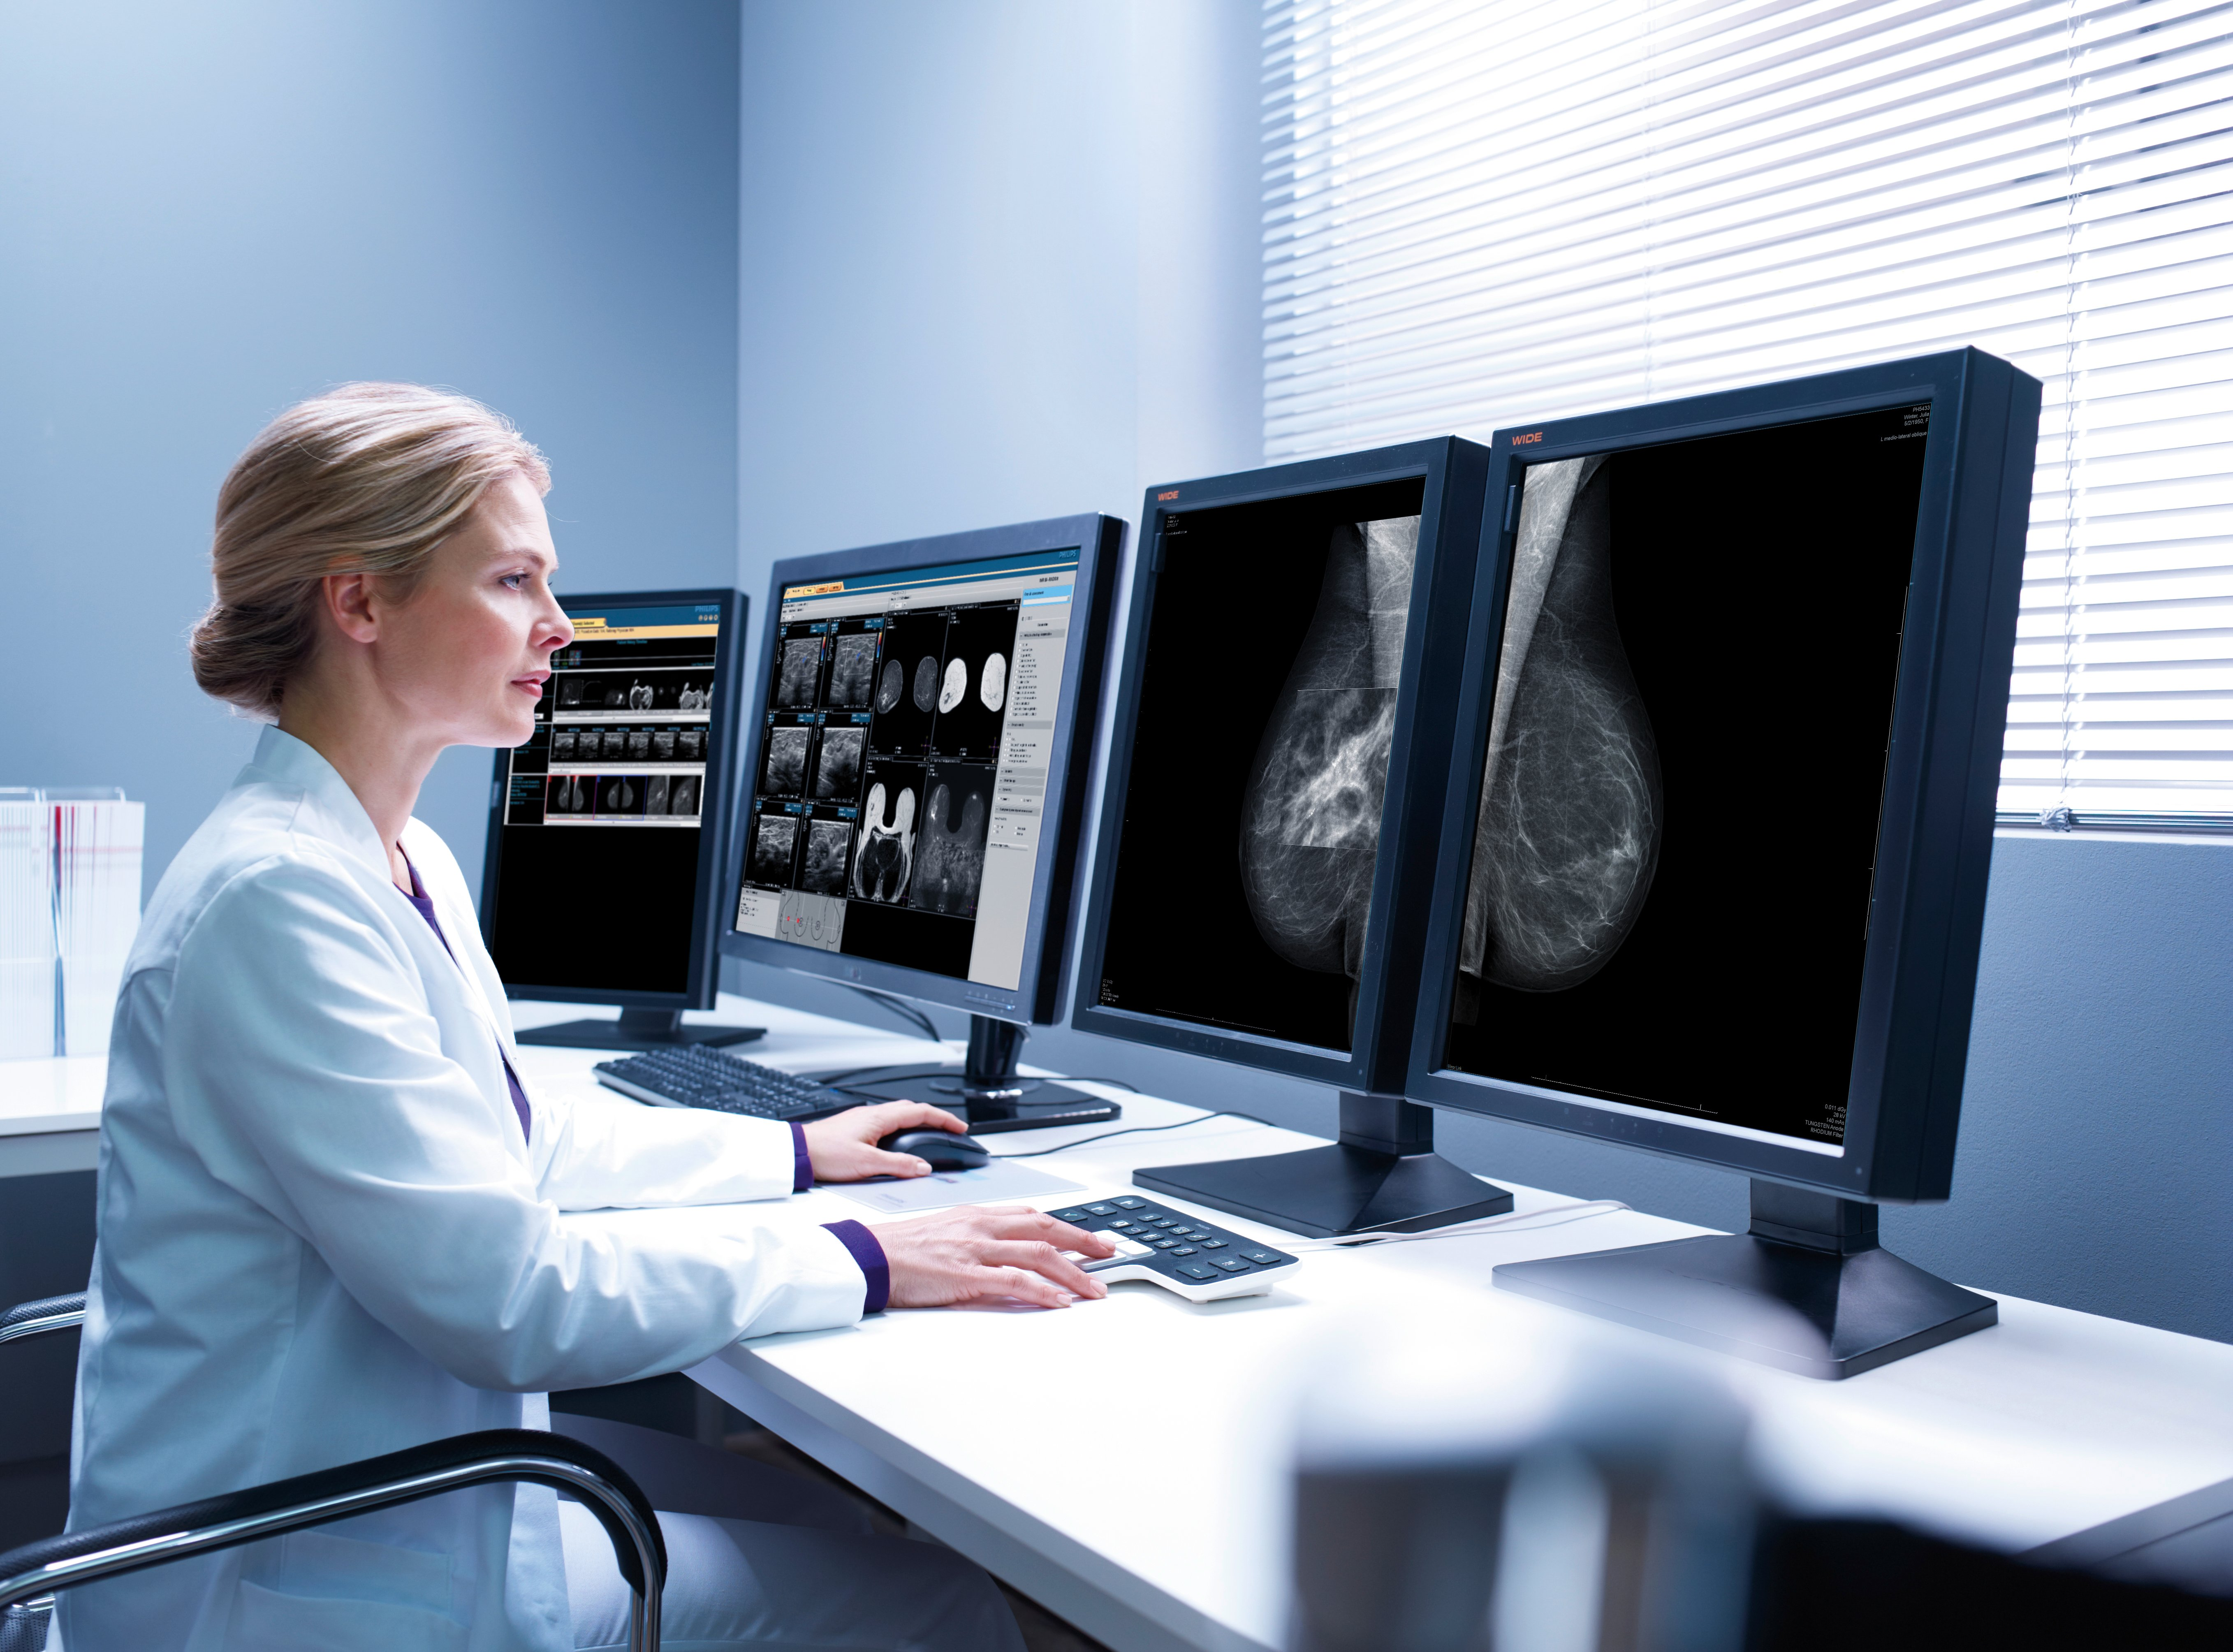 Fda updates mqsa facility certification extension requirements for fda updates mqsa facility certification extension requirements for digital breast tomosynthesis systems imaging technology news xflitez Gallery